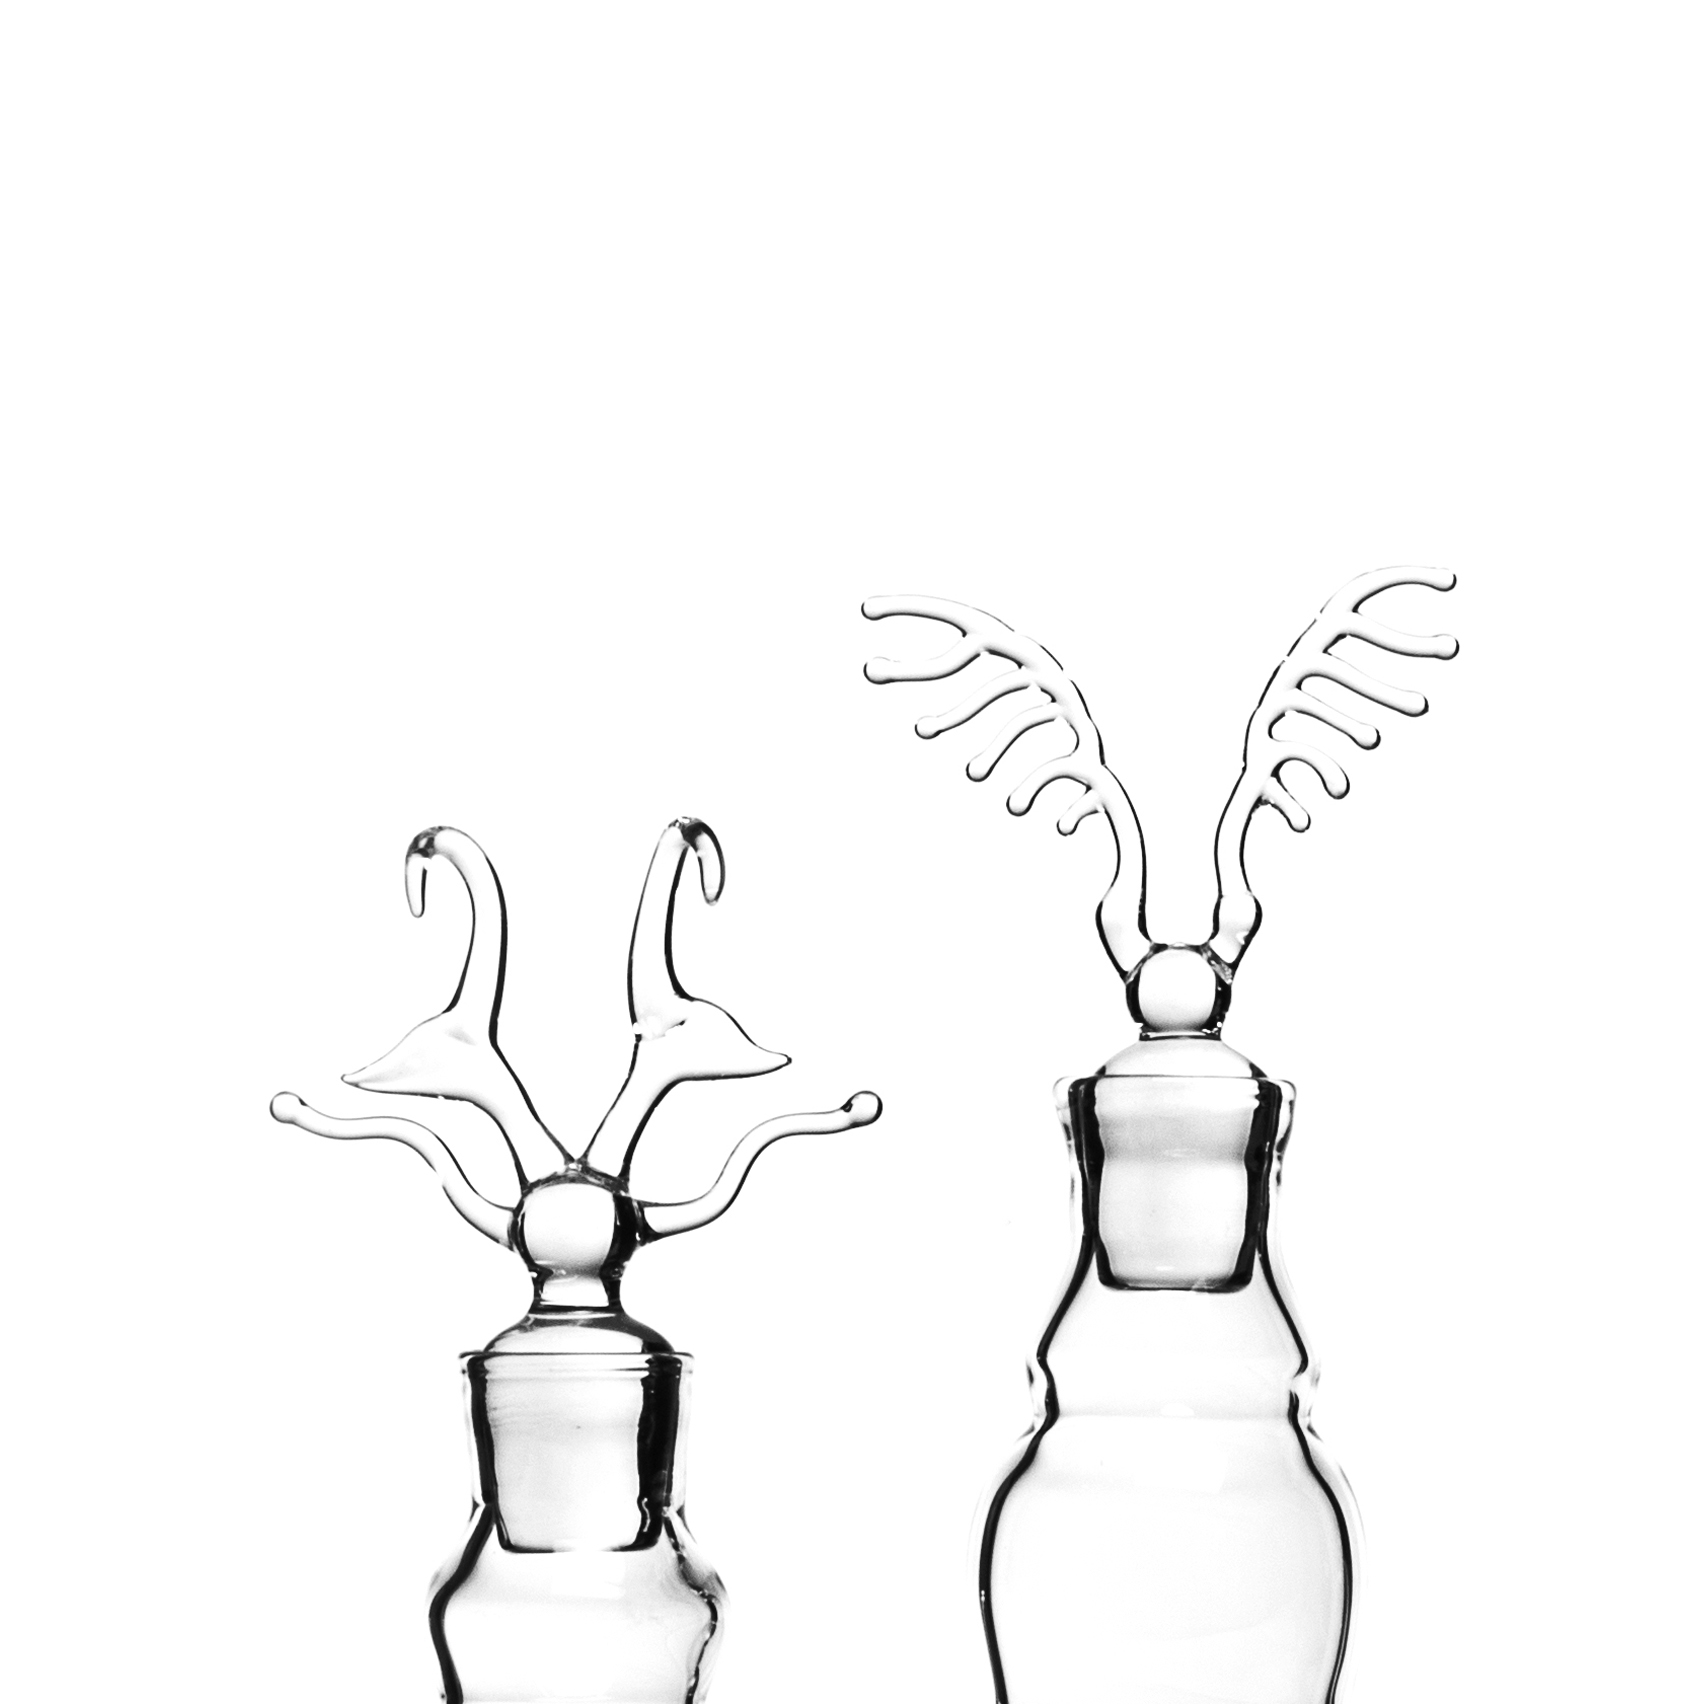 Olenecamptus fouqueti - Bottle - <p>The shape of insects exoskeleton was translated into bottles and vases. The design thus generated was used as a reference to reproduce the pieces in glass. The way sometimes archaeologists and historians do in order to better understand lost cultures.<br /> On the other hand a materic analogy occurs, in fact when insects molt their exoskeleton is soft at first so they can stretch it from within at maximum size. It then sclerotizes, becomes rigid, just like in glass blowing.</p>    Matter of Stuff